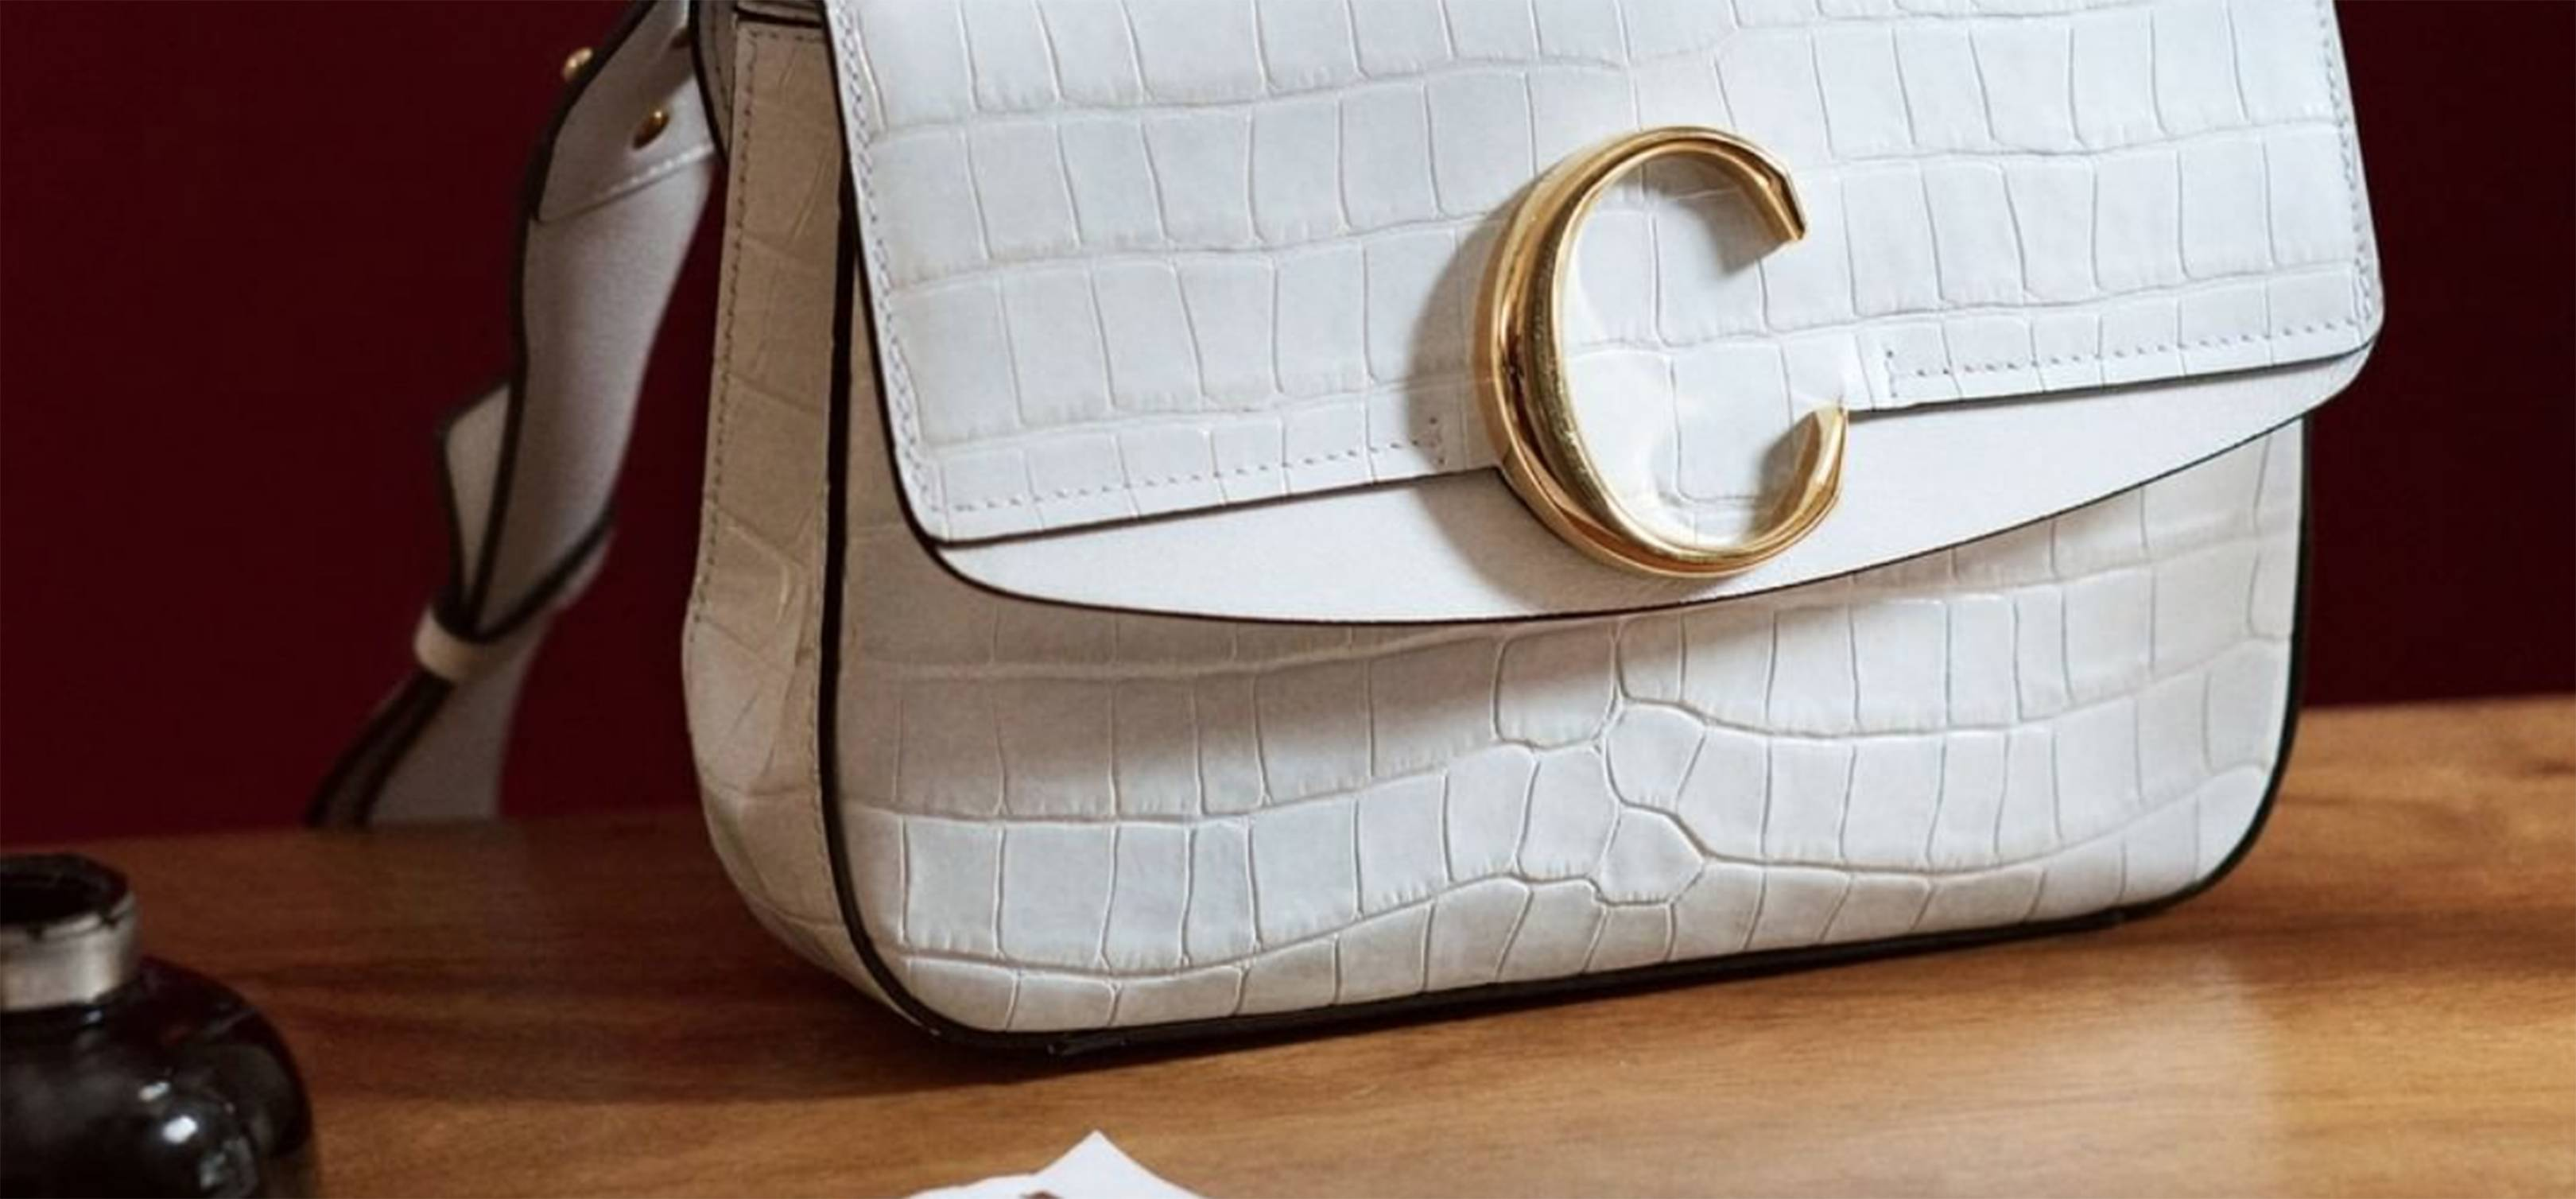 349f85d5648 Chloé  C  Bag  The Designer Bag You Should Buy This Year